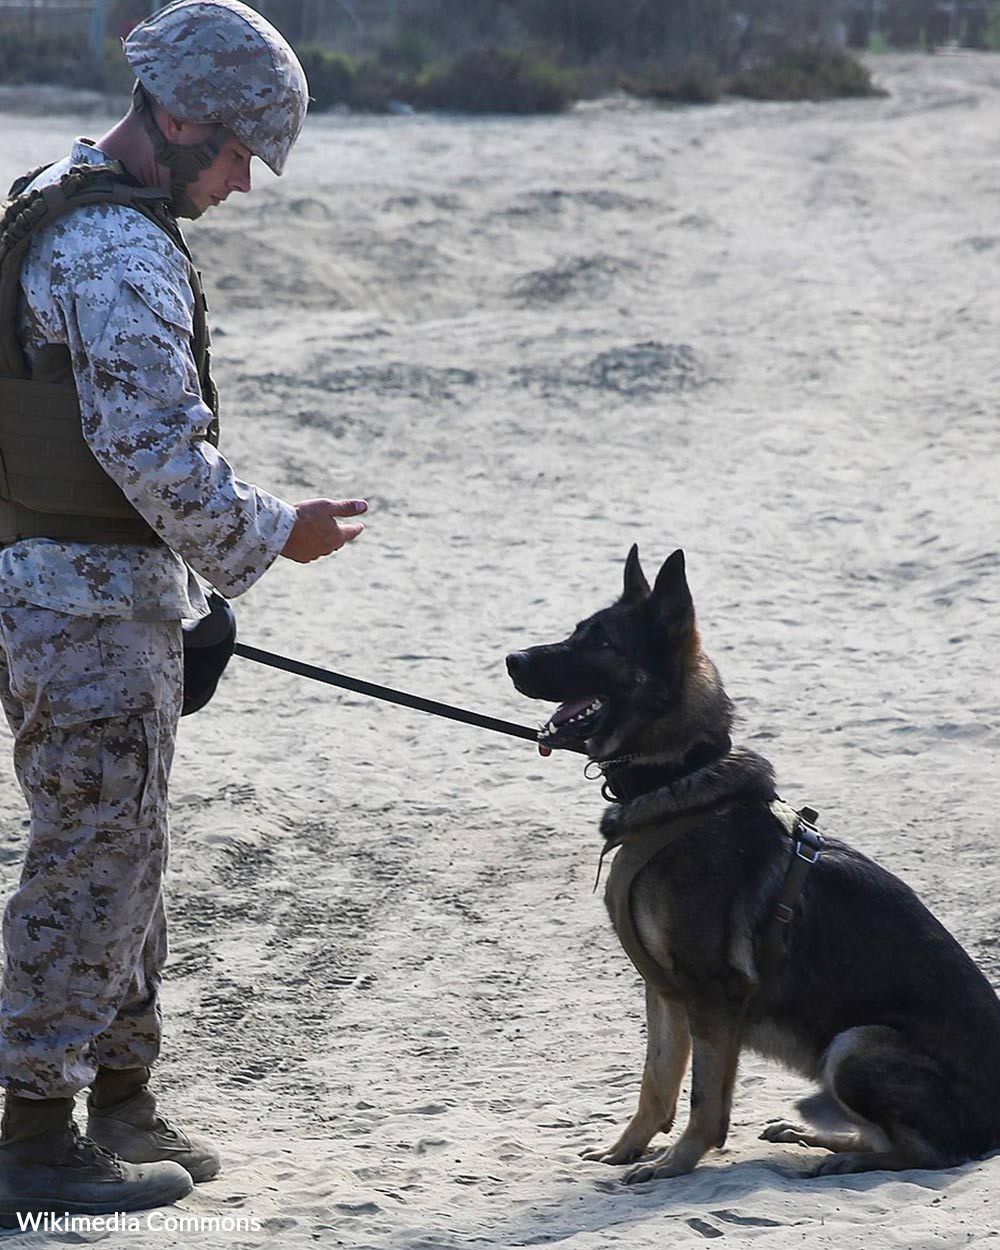 Cpl. Jeremiah Gerber of the Military Working Dog Platoon, Headquarters and Support Company, 1st Law Enforcement Battalion, I Marines Expeditionary Force, performs obedience and control drills with his drug detection dog.